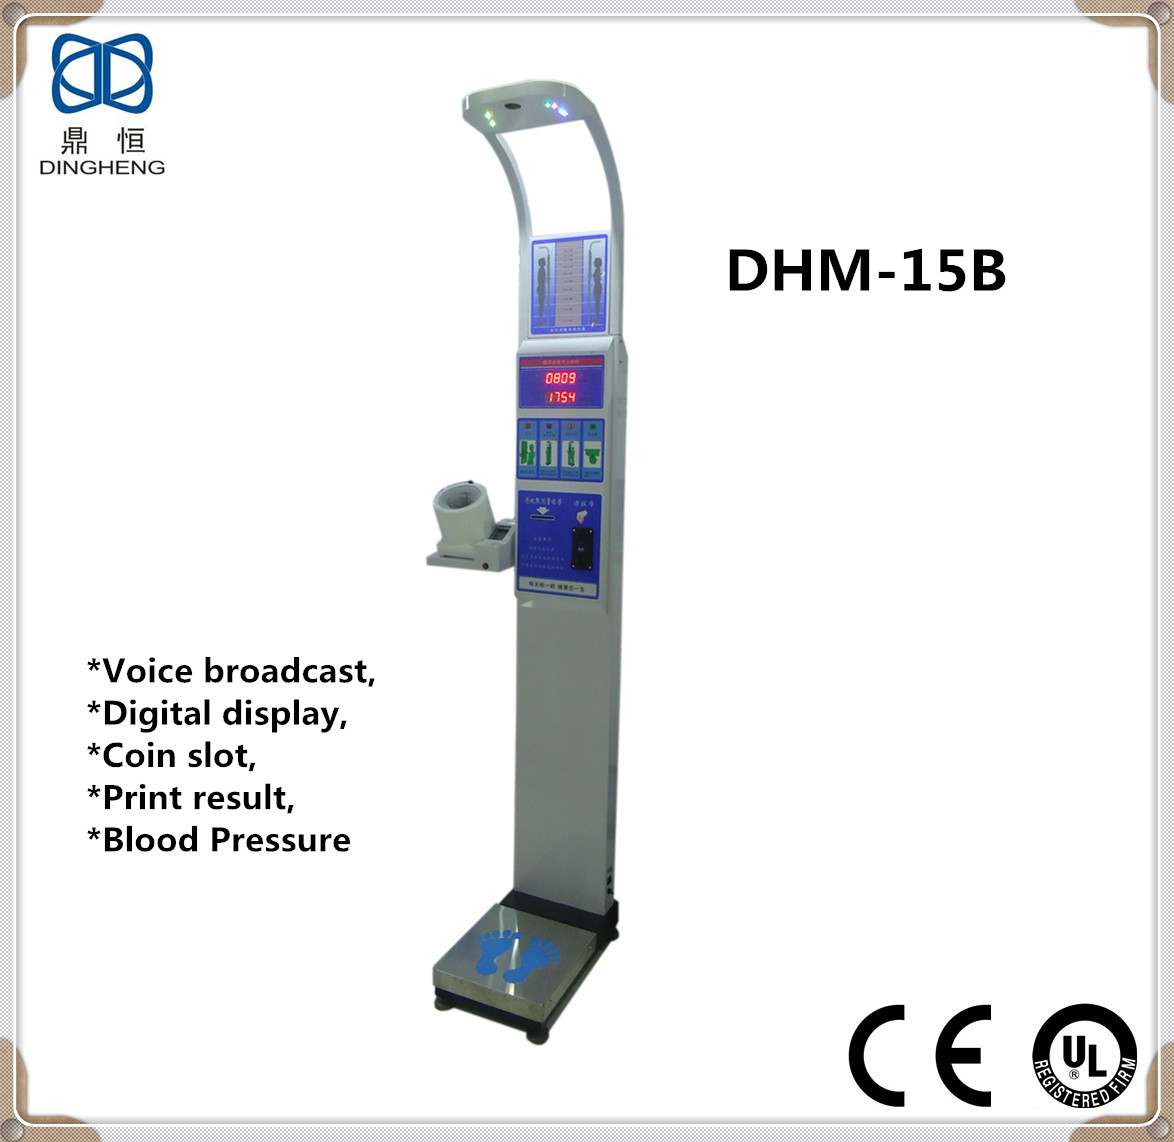 500kg Clear Glass Household Health Body Scale Coin slot height and weight health measuring DHM-15B